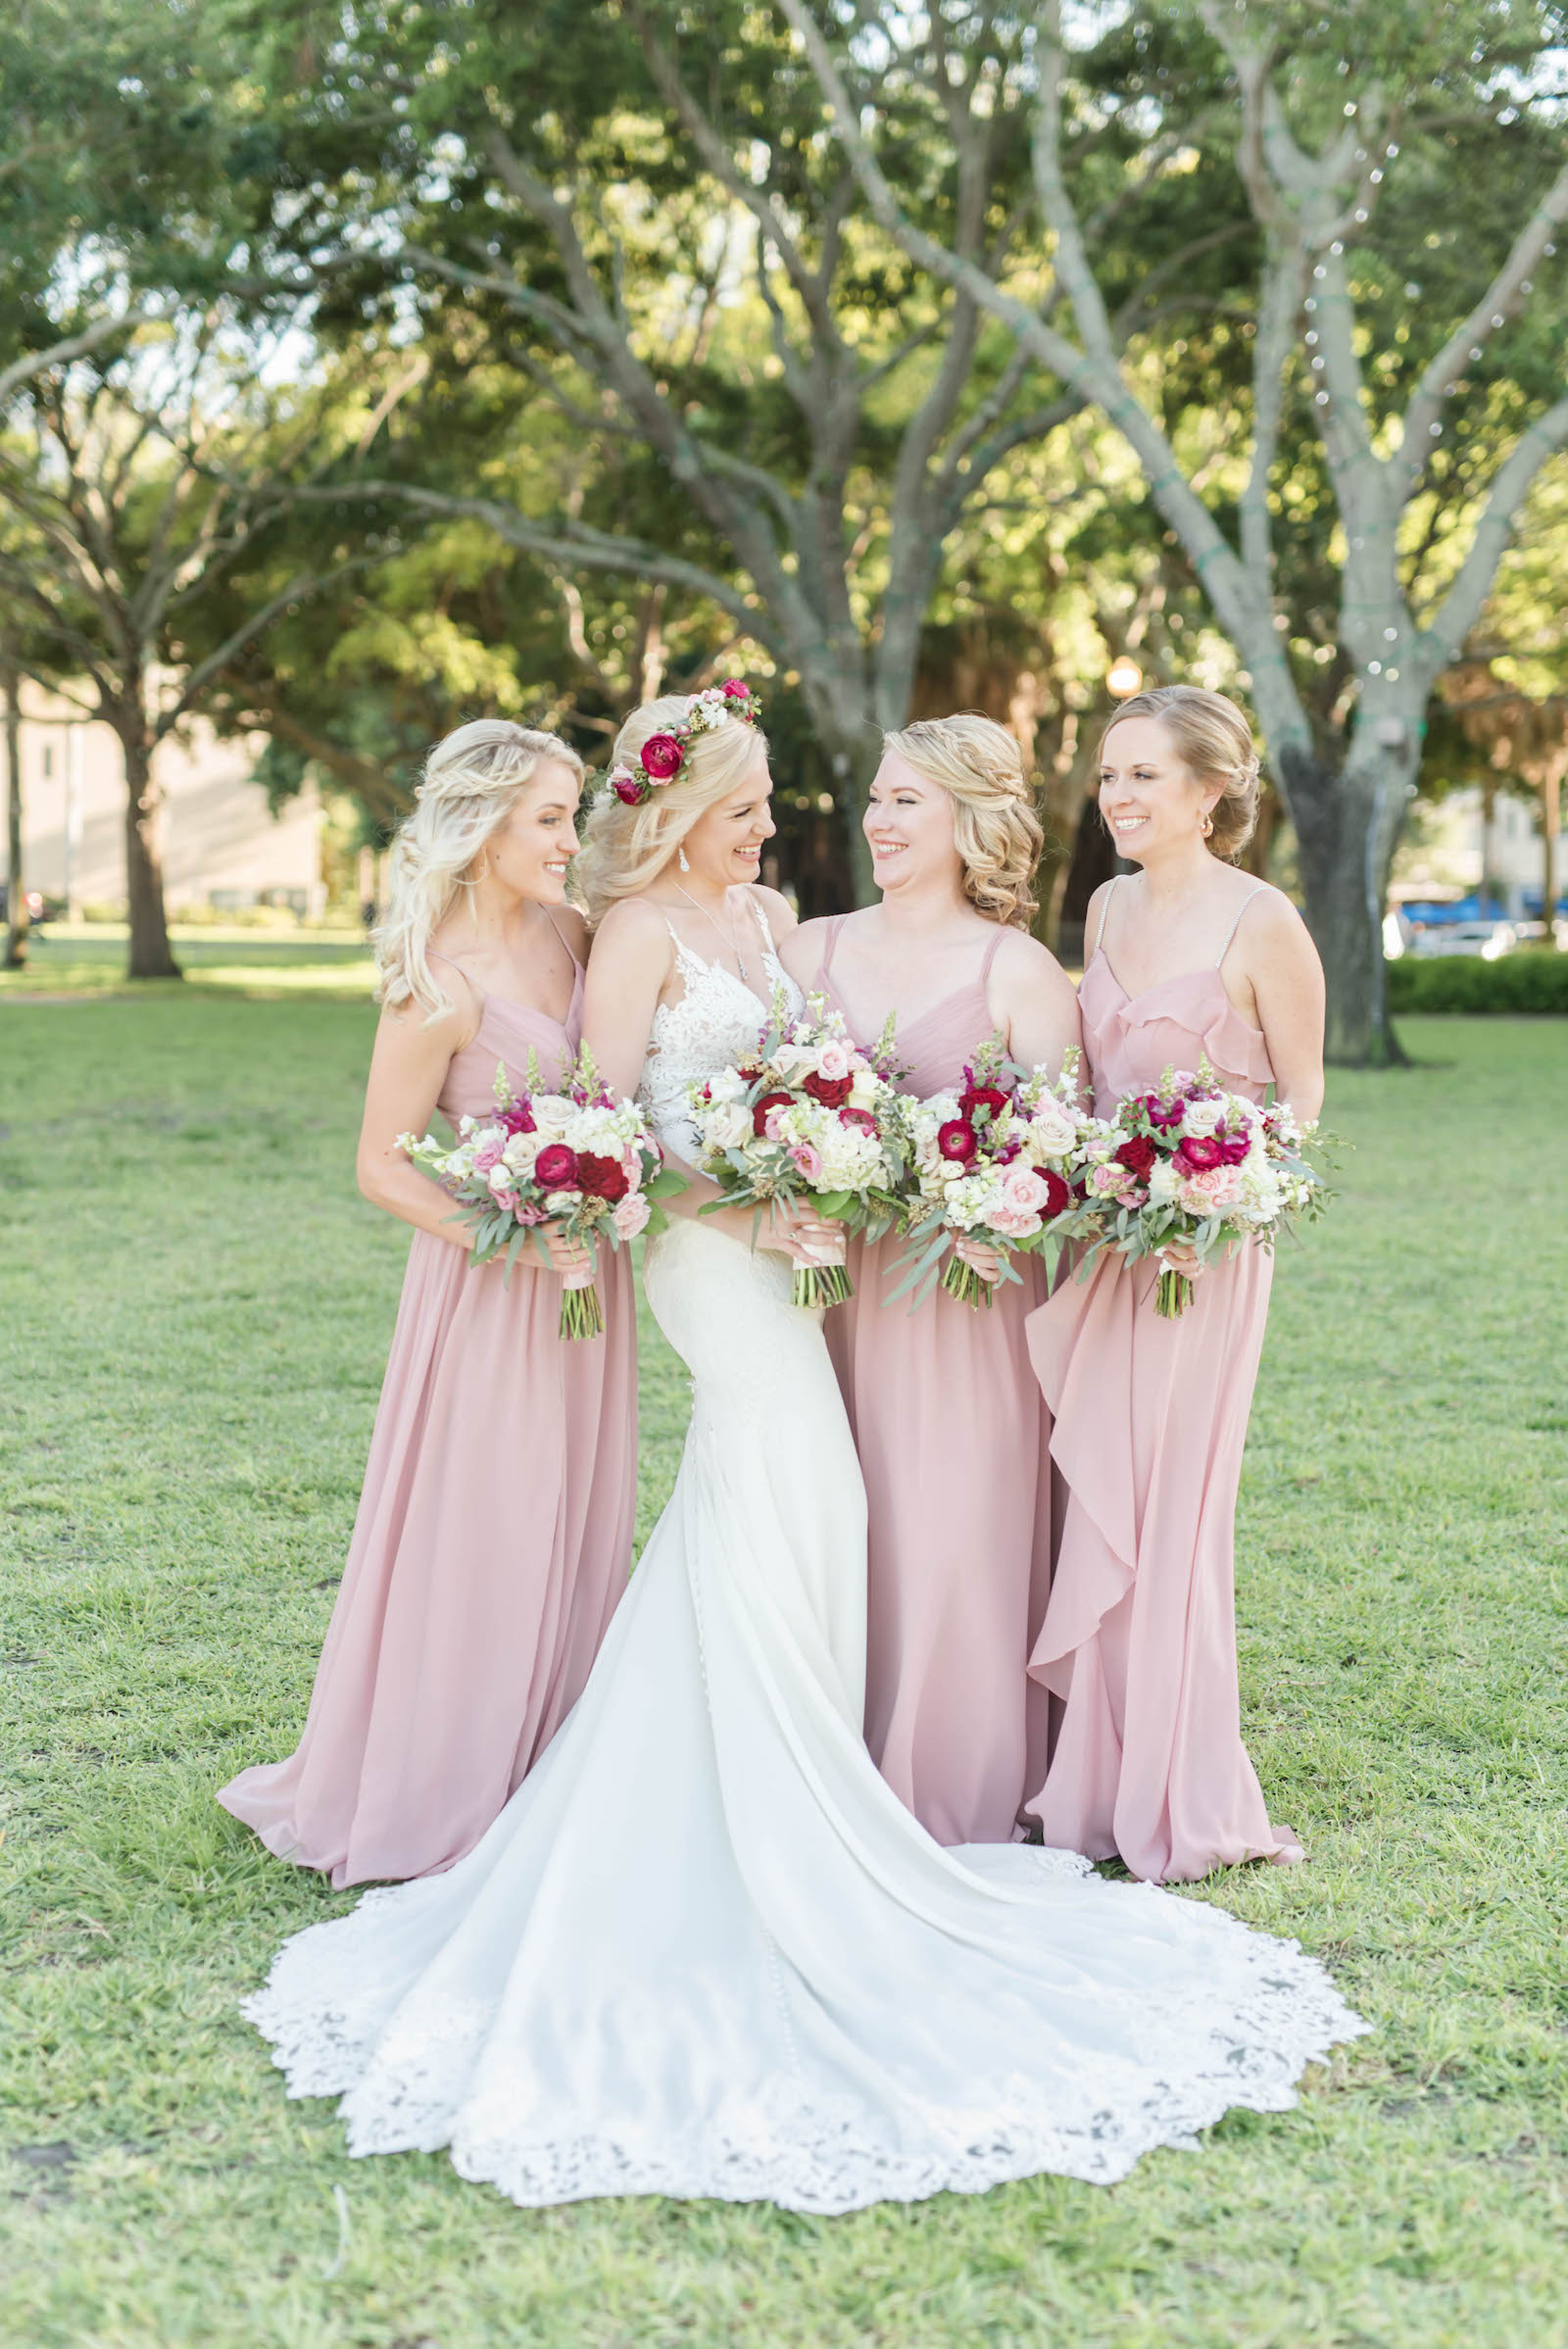 Bride and Bridesmaids Portraits   Blush Pink Dusty Rose Mismatched Chiffon Bridesmaid Dresses   Stella York Lace Sheath Spaghetti Strap Empire Waist Wedding Dress Bridal Gown   Bride Wedding Bouquet and Halo Crown with Blush Pink Dusty and Burgundy Rose Garden Roses, Snapdragons, Stock, and Eucalyptus Greenery